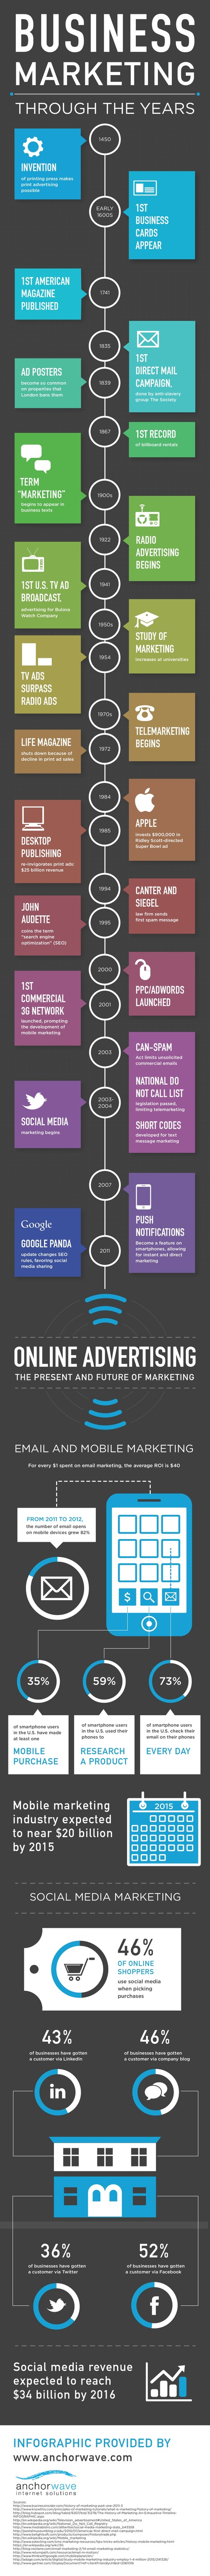 The History Of Marketing | Social Media and Internet Marketing | Scoop.it